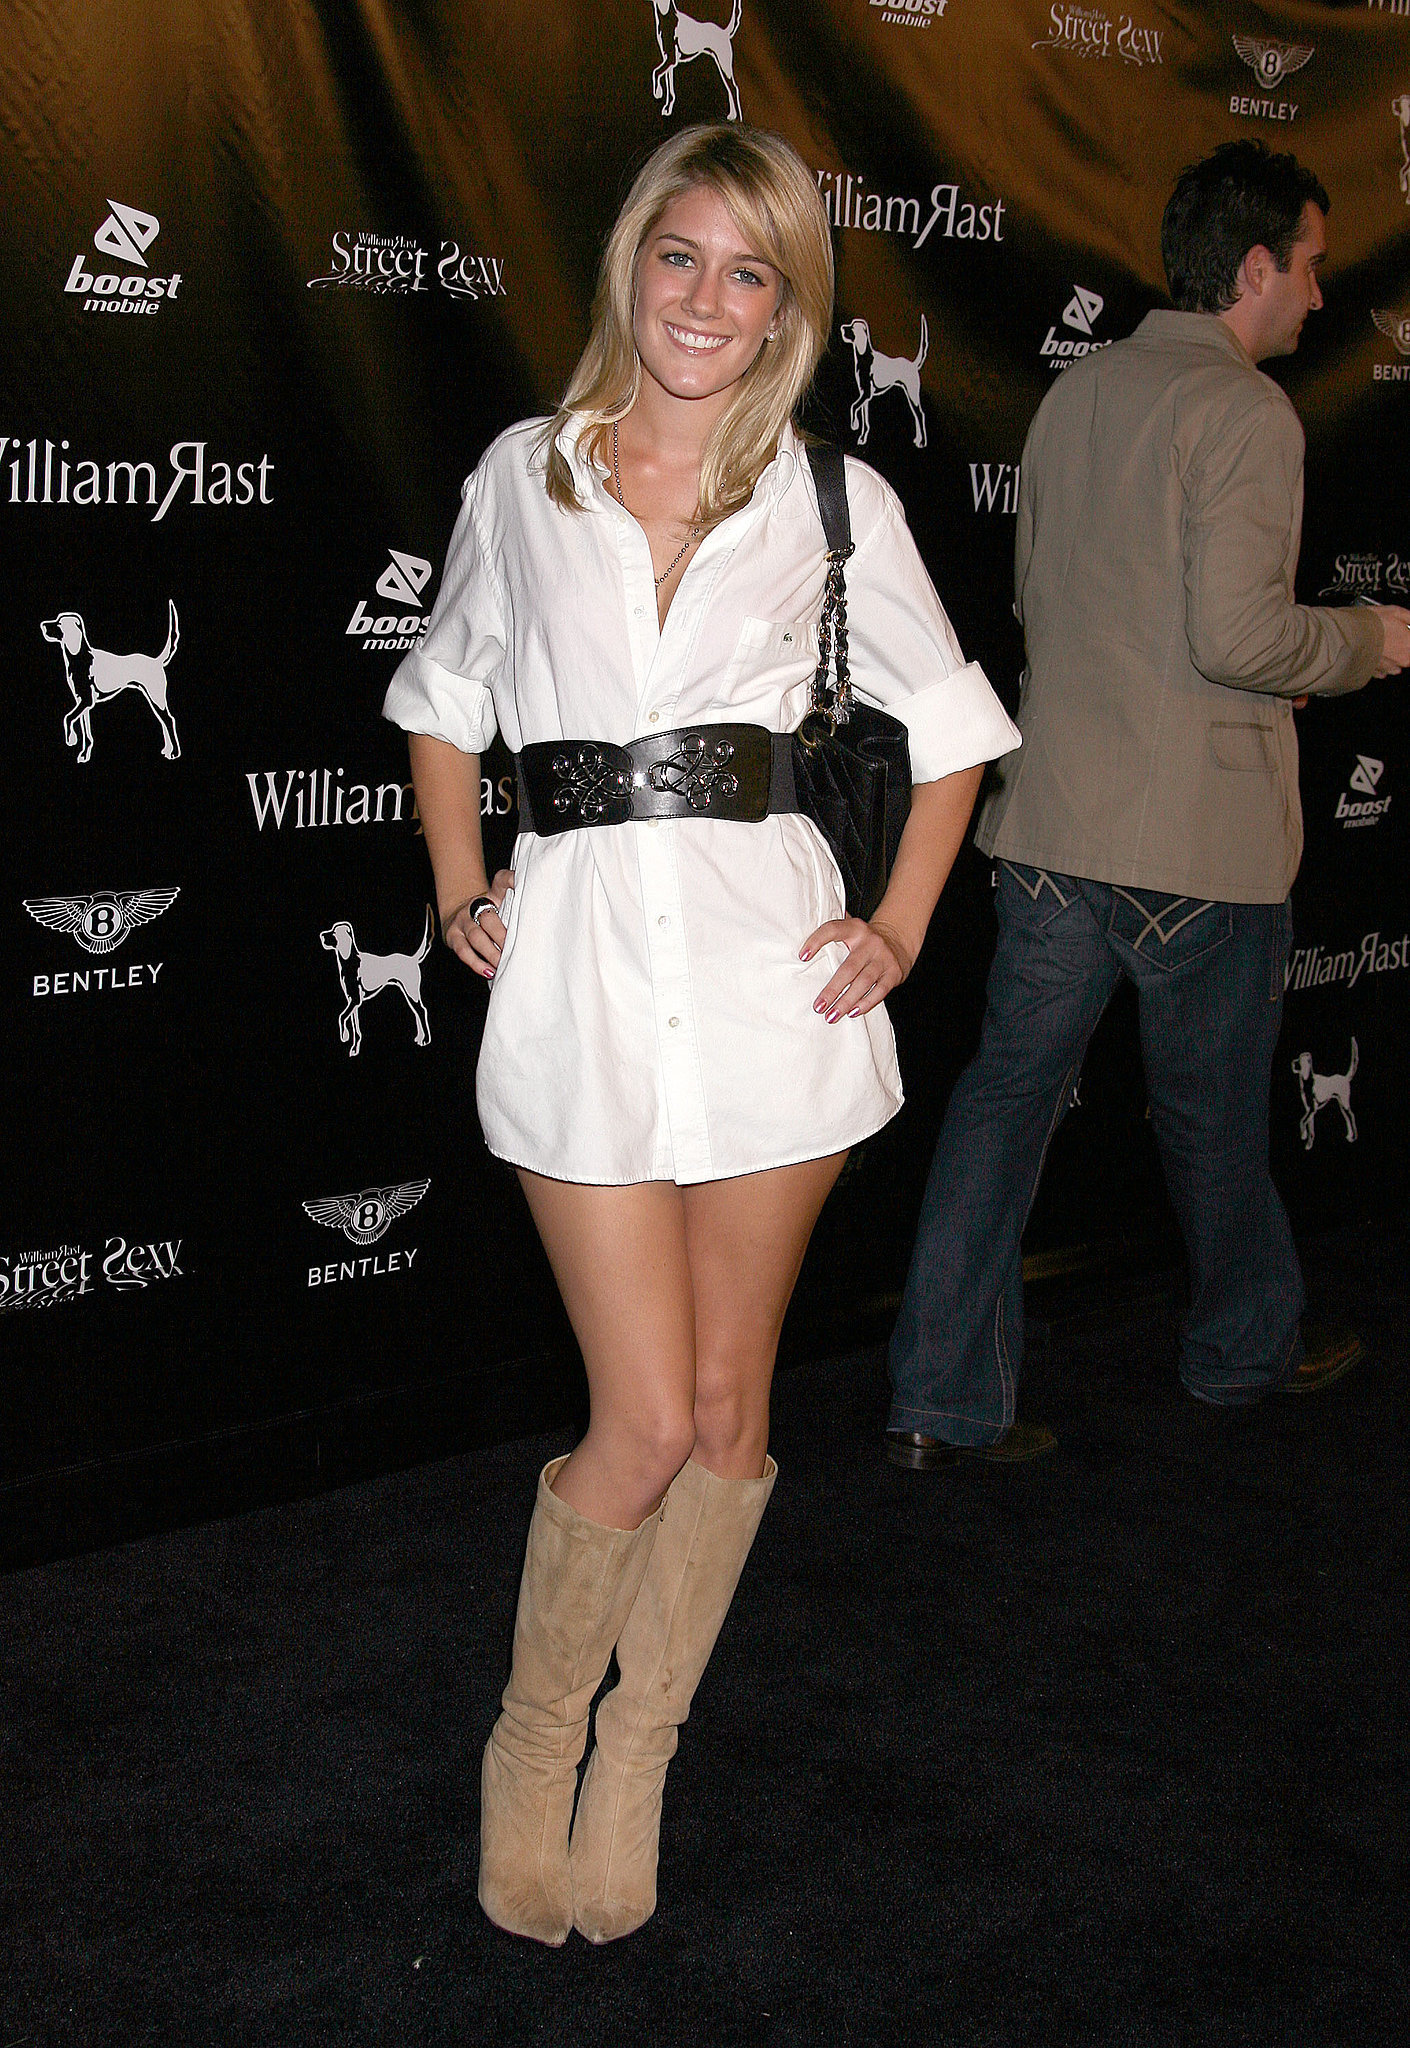 Heidi channeled Risky Business-meets-Wild Wild West.